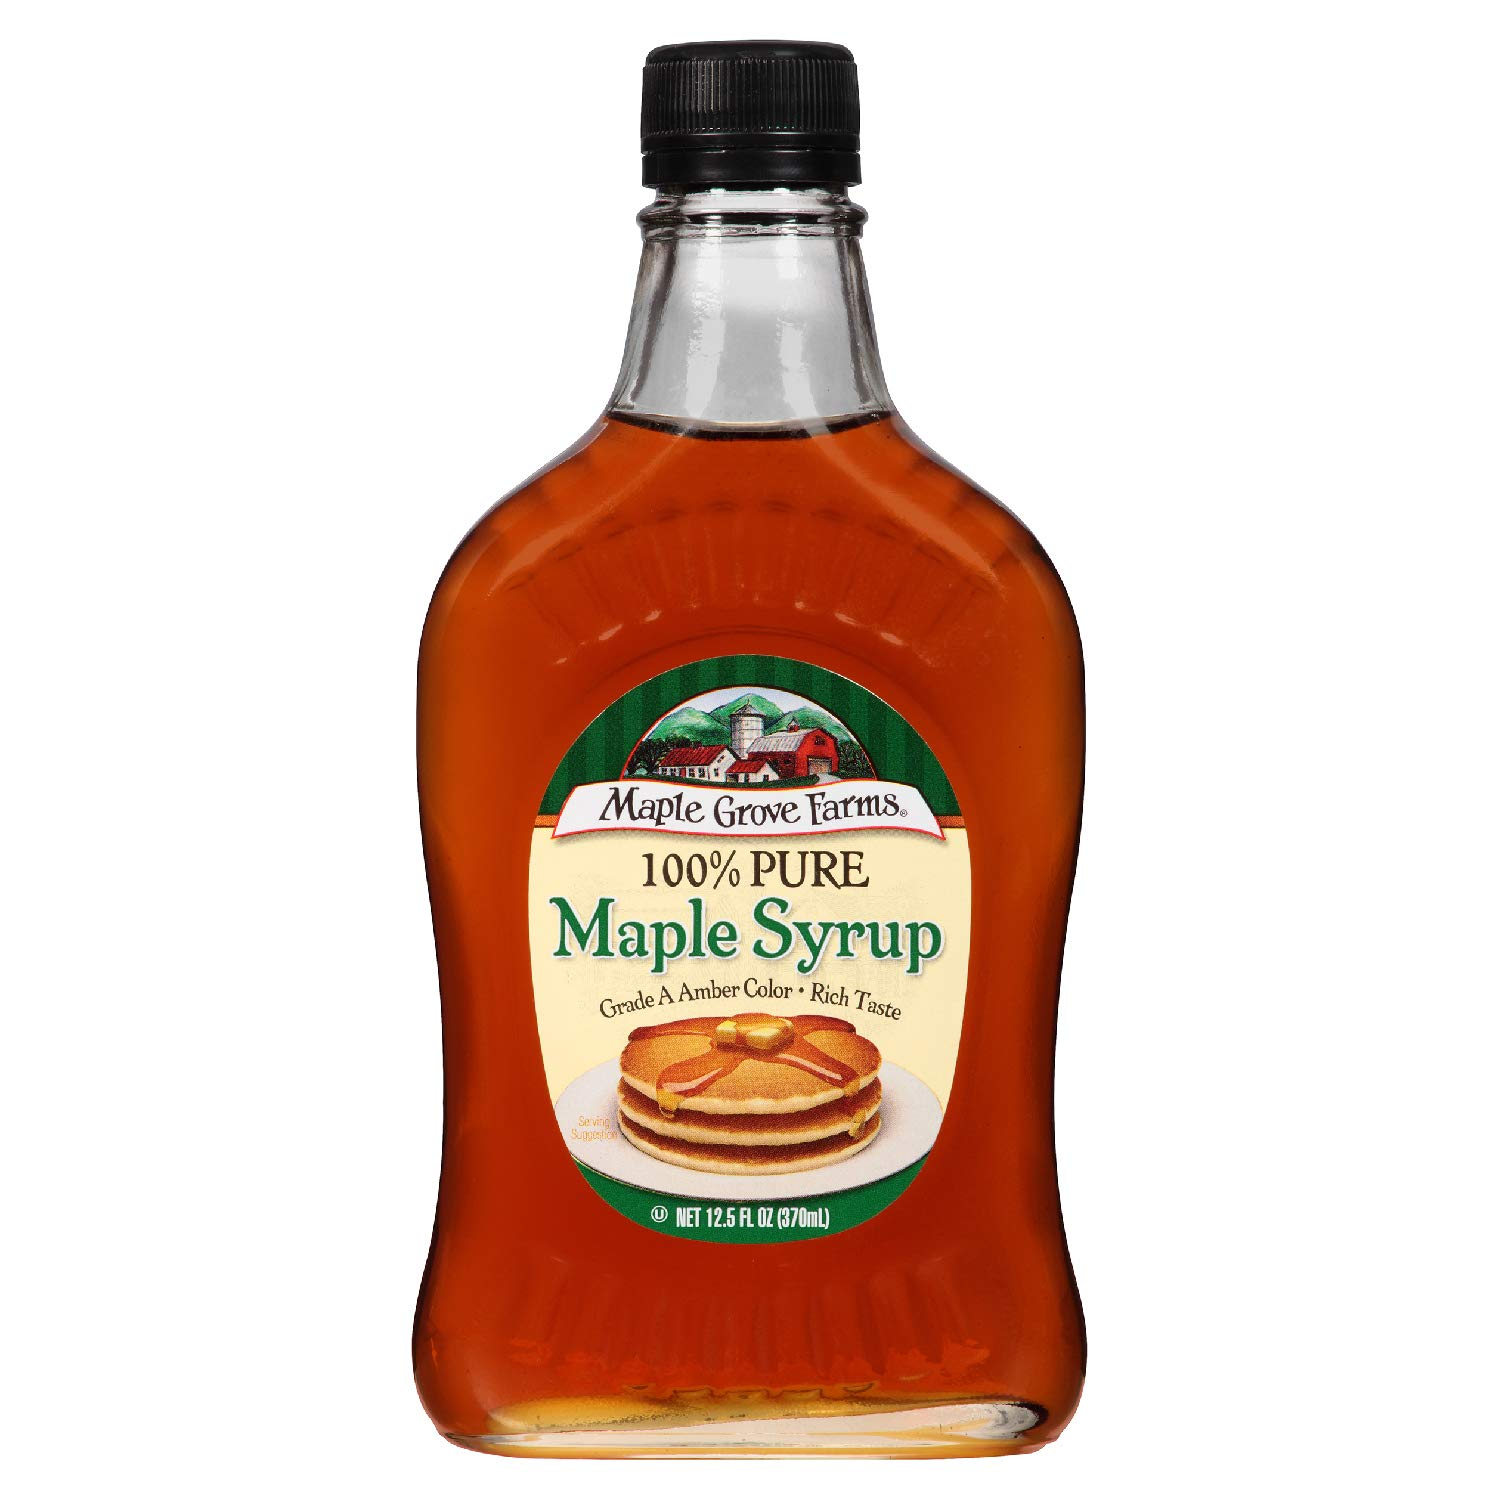 Maple Grove Farms Pure Maple Syrup